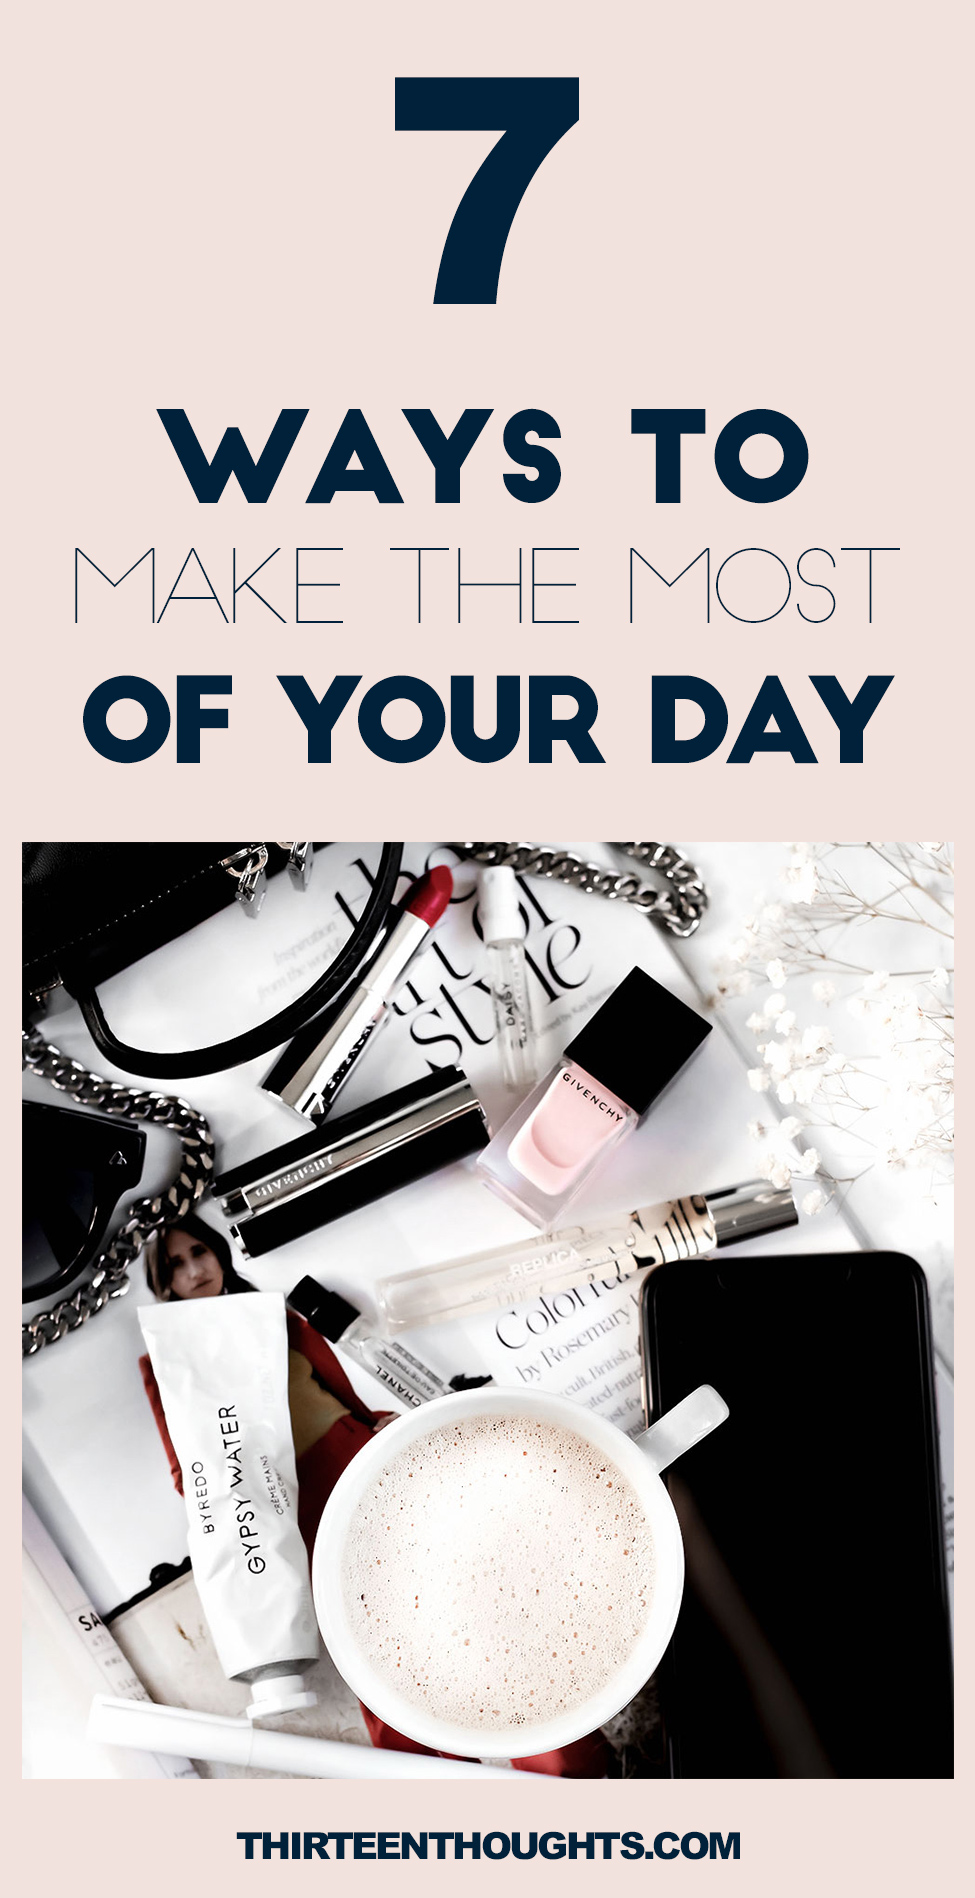 How to make the most of your day